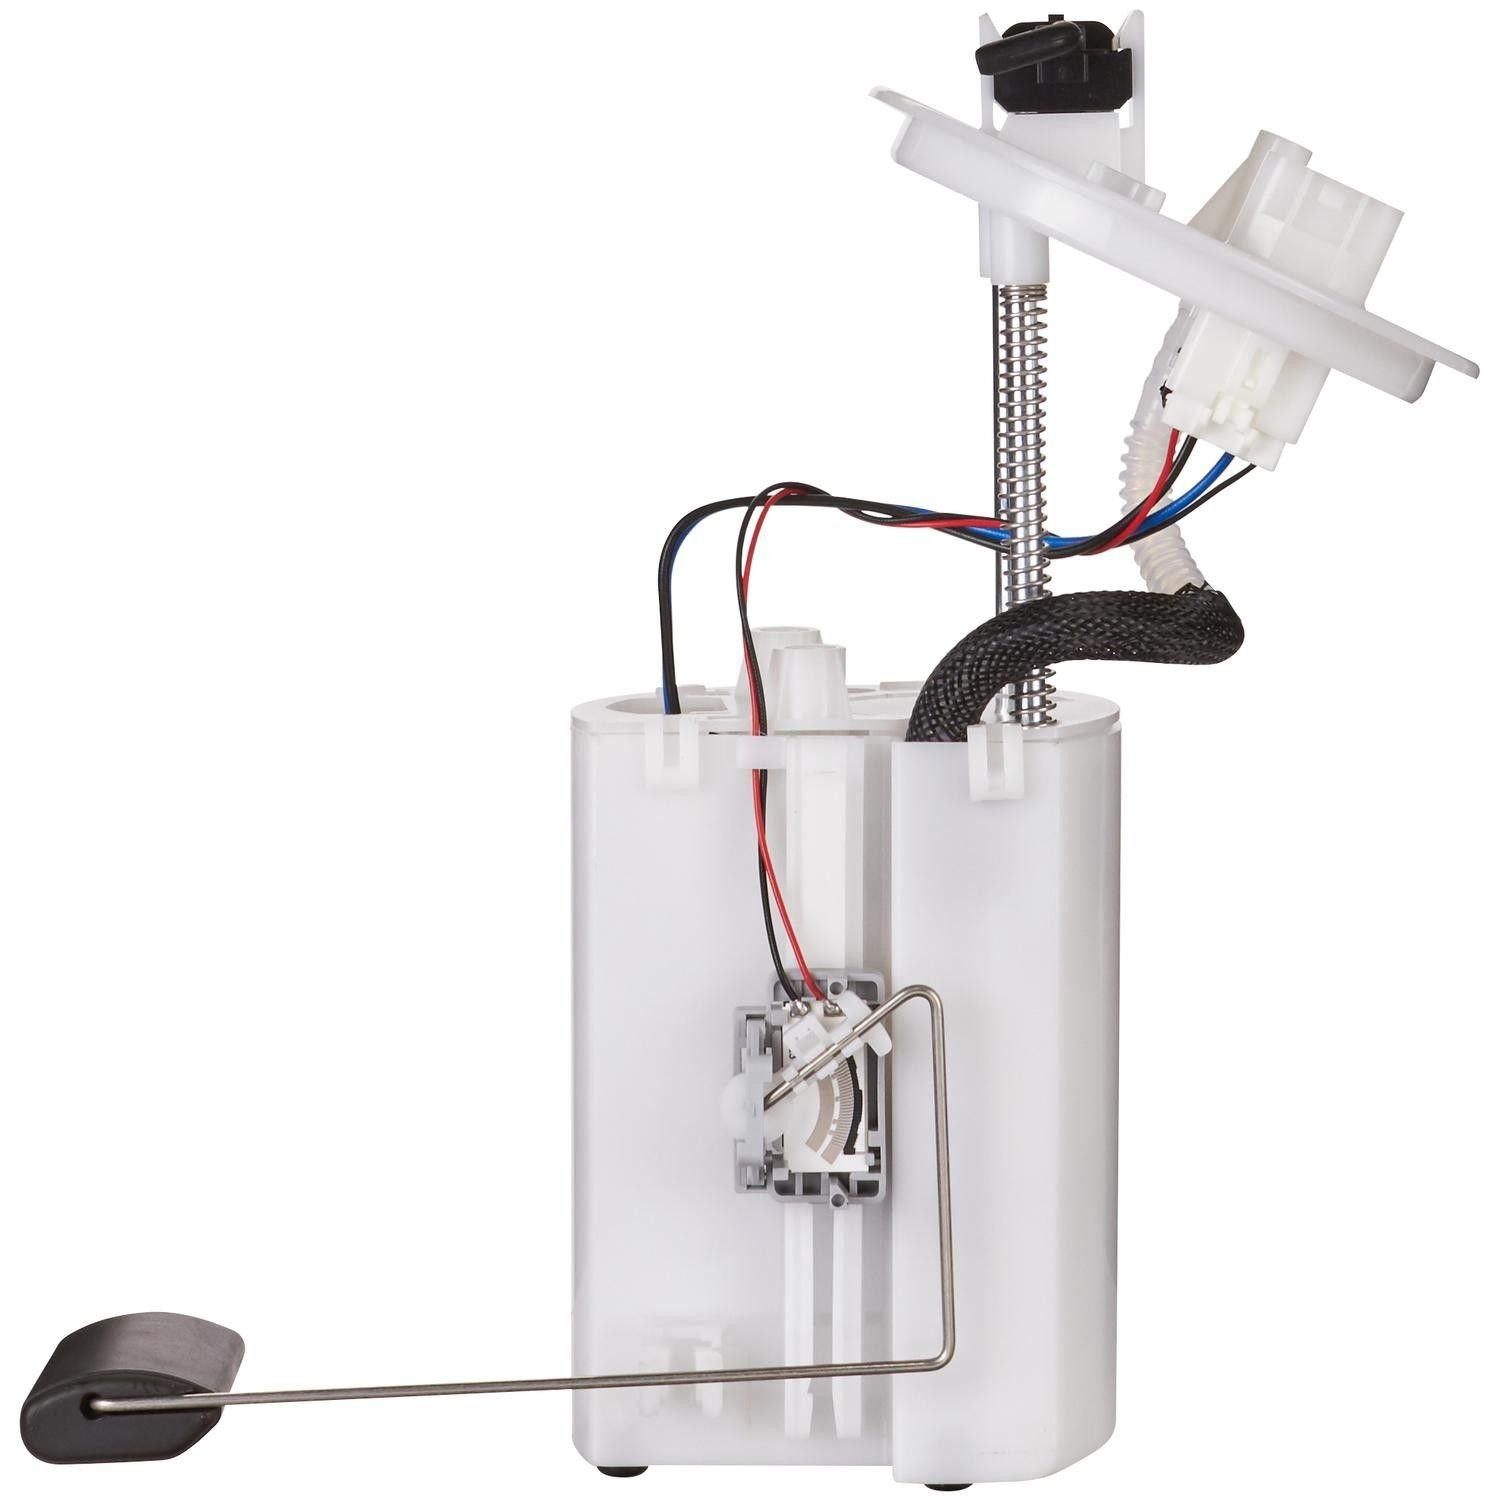 Kia Optima Fuel Pump Module Assembly Replacement Airtex Auto 7 2003 Spectra System 2011 4 Cyl 20l Sp3048m Korea Built Internal Strainer Included